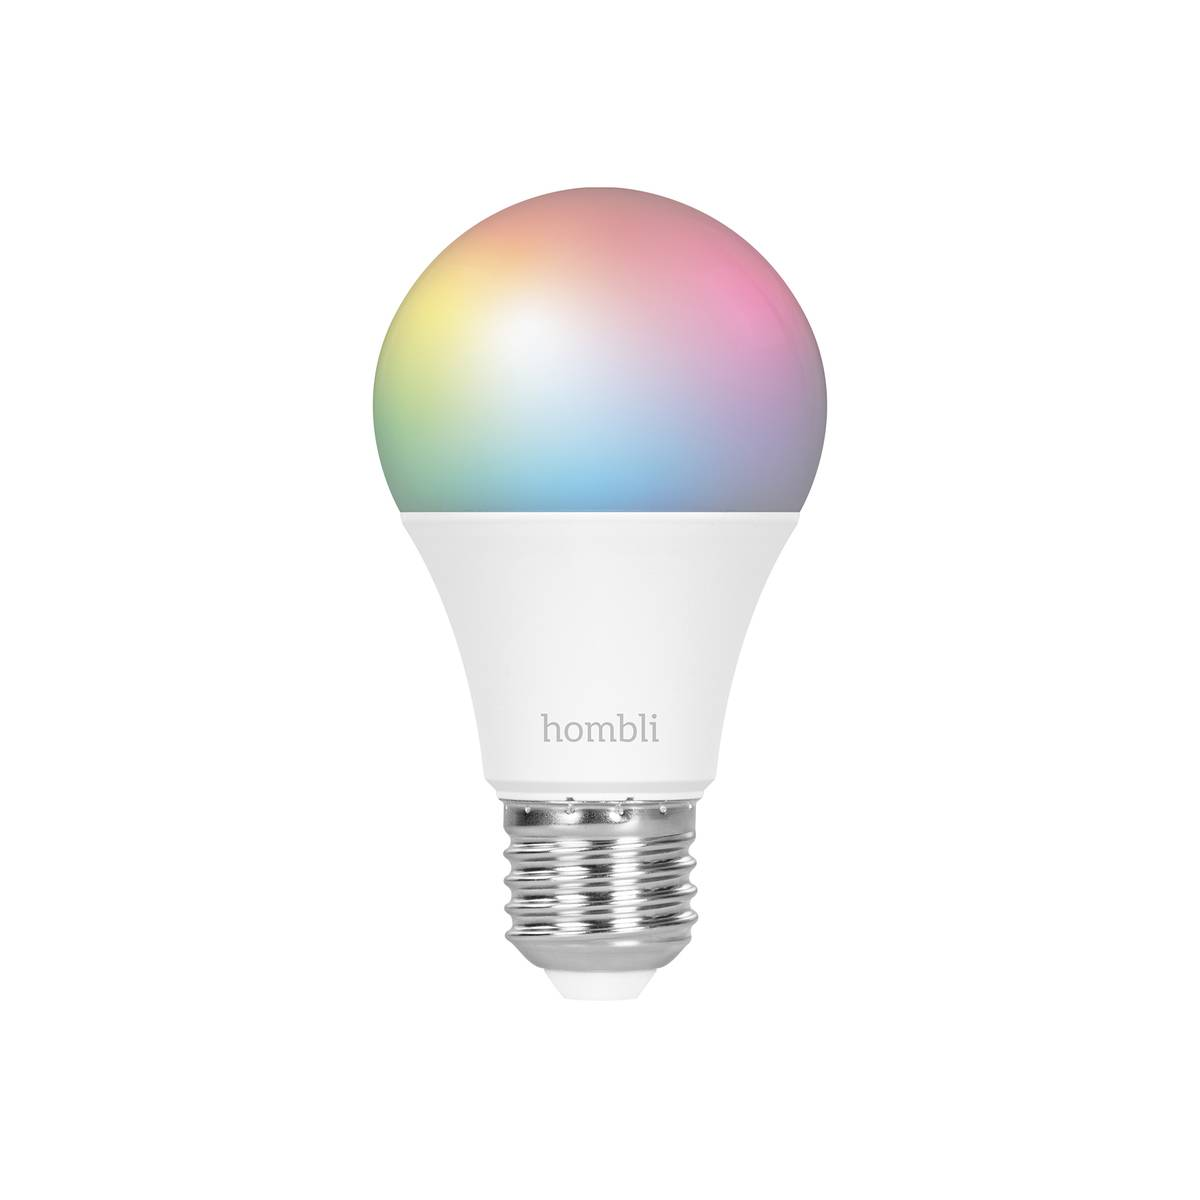 hombli smart bulb e27 rgb + cct incl. bt